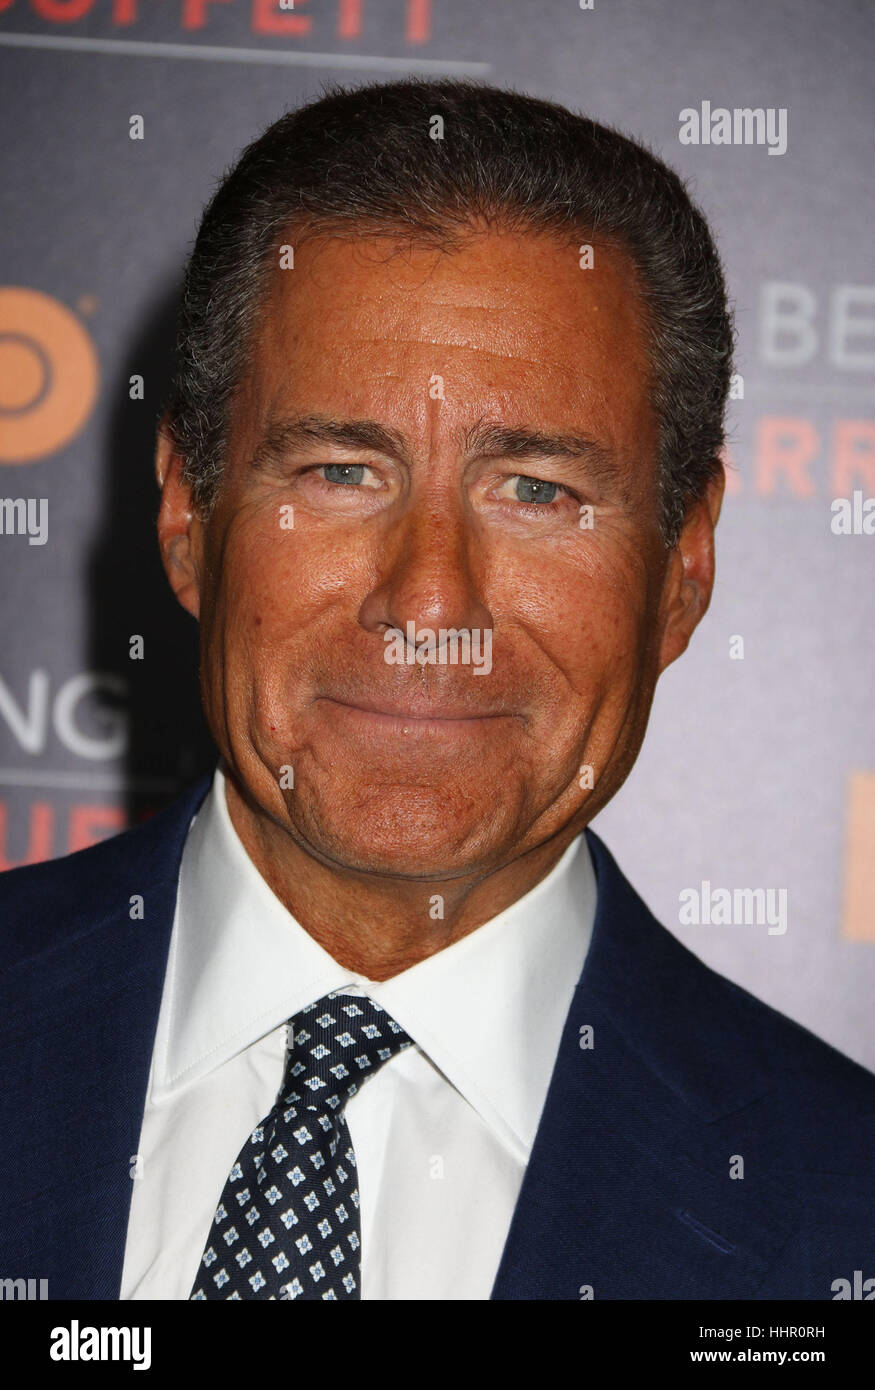 New York, USA. 19th Jan, 2017. CEO of HBO Richard Plepler attends the world premiere of the HBO film 'Becoming - Stock Image